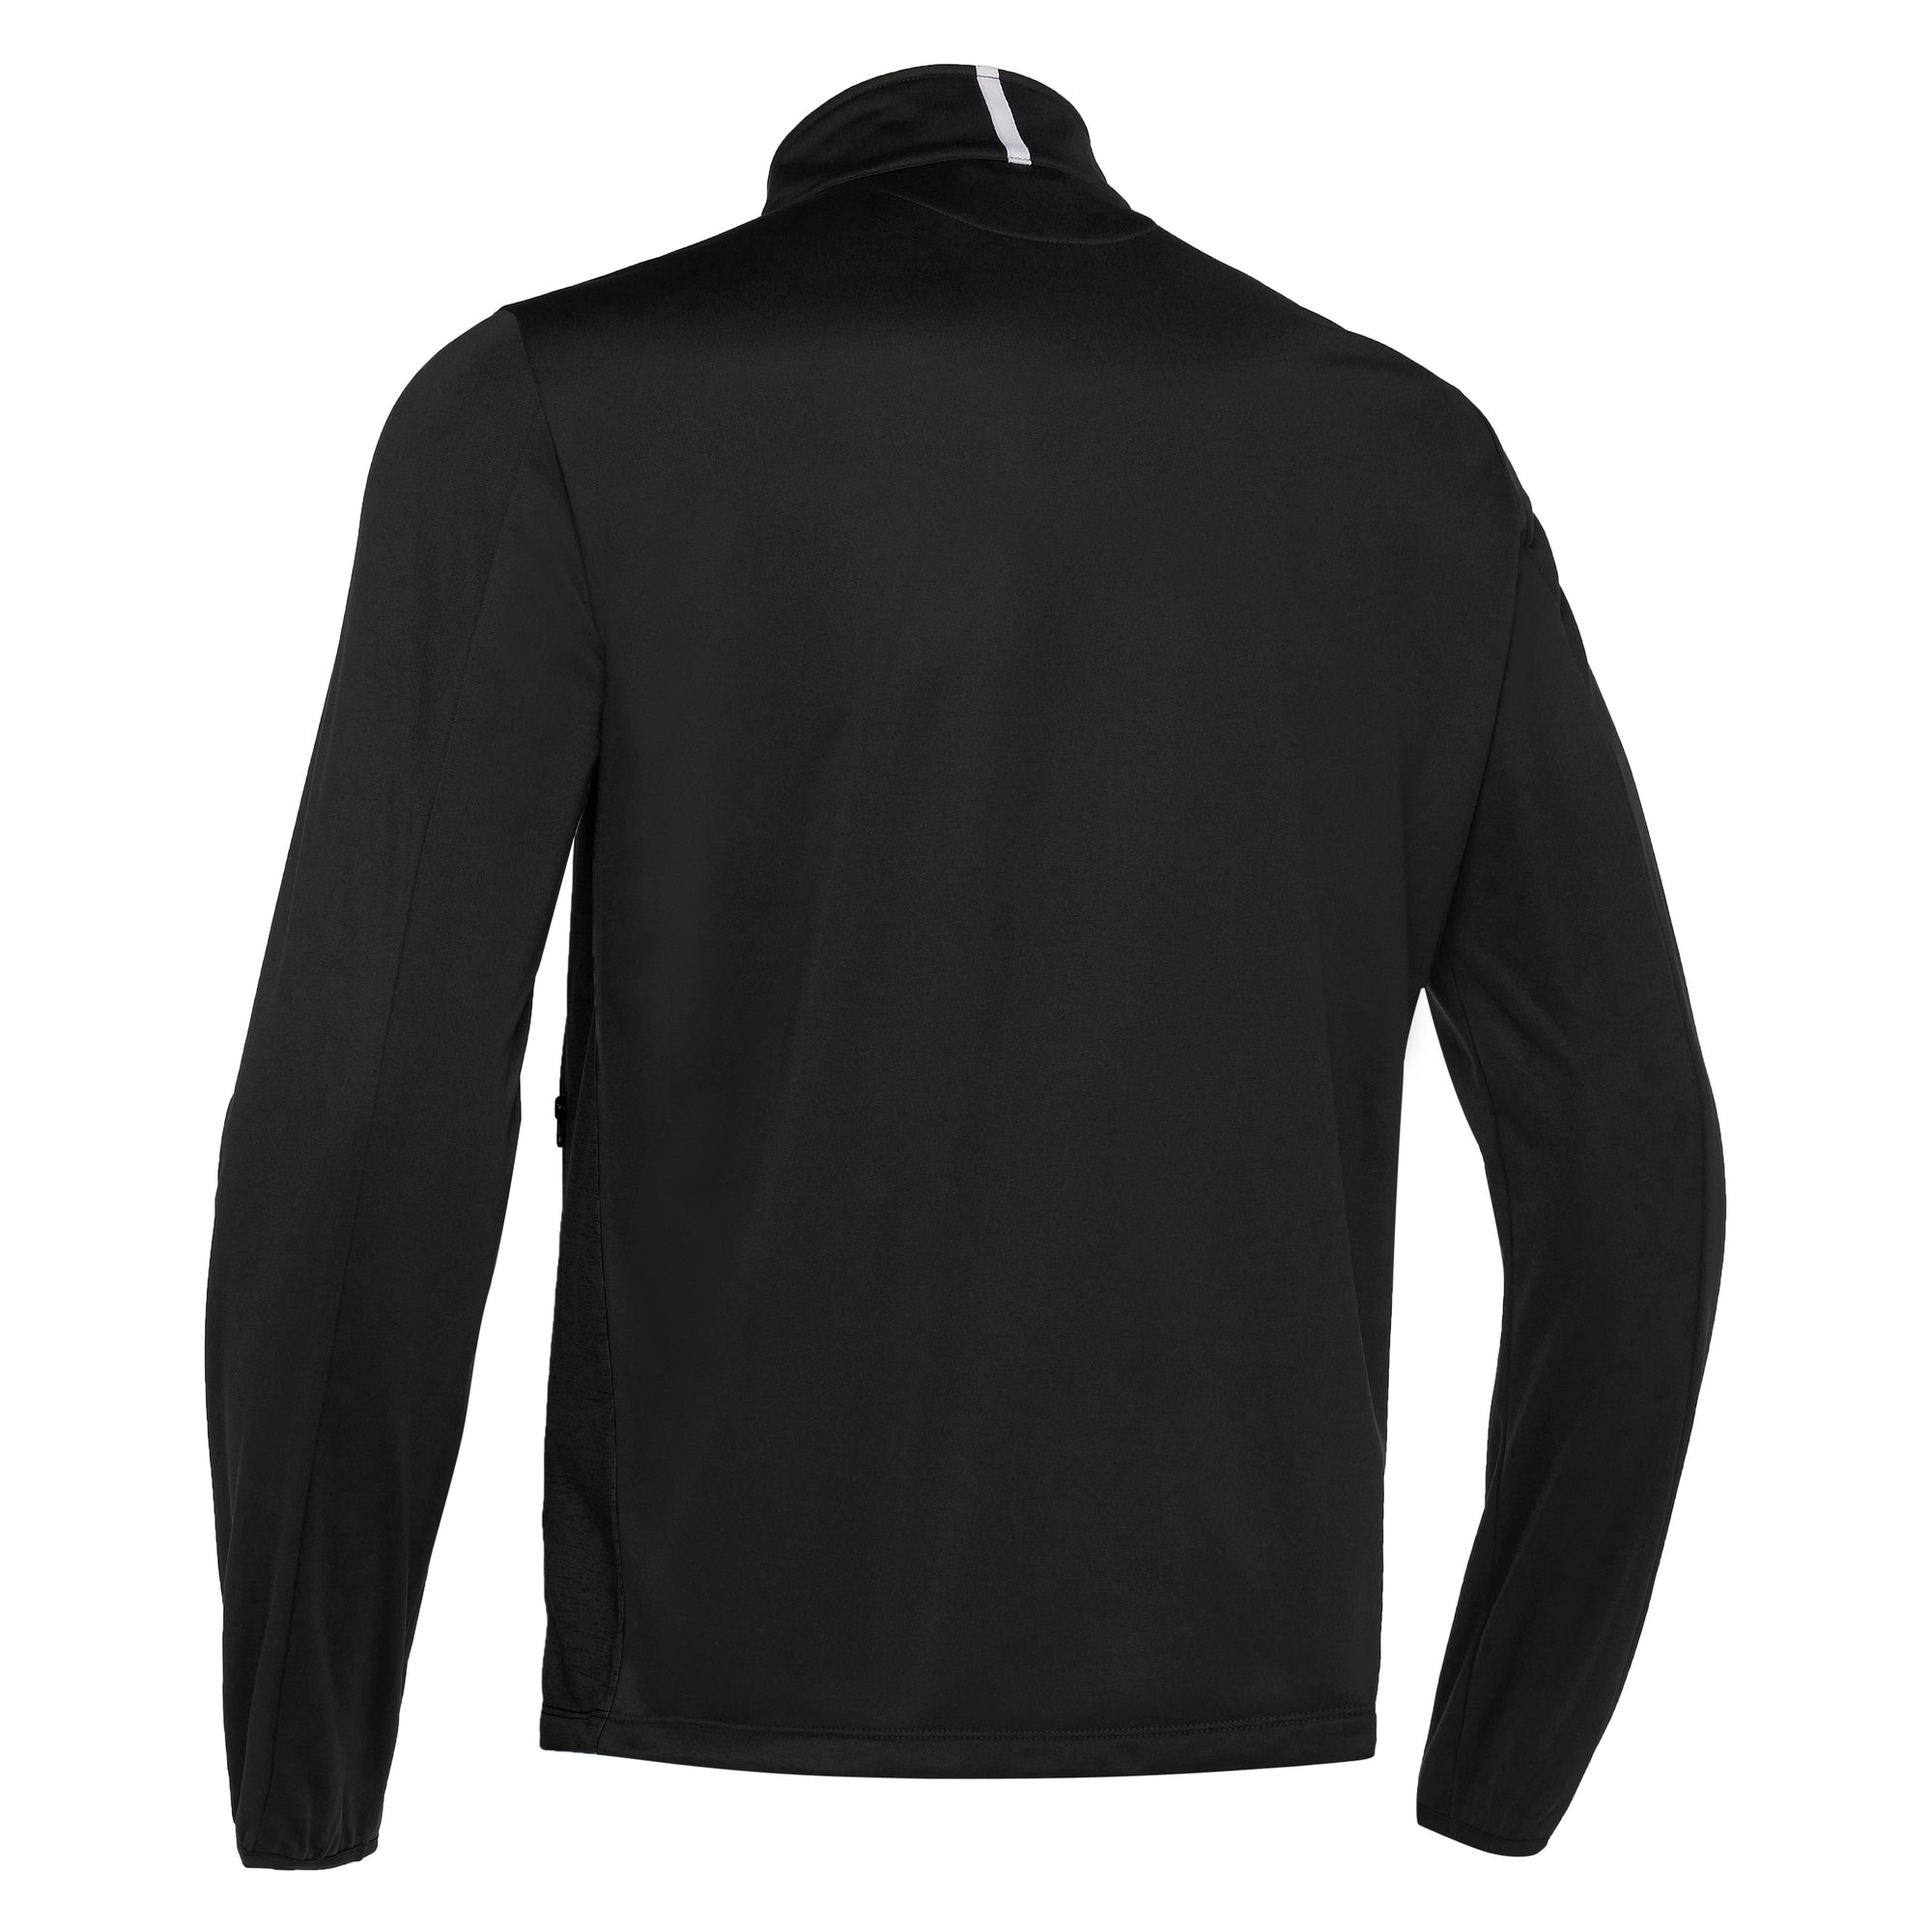 NFFC Mens Black Gea Full Zip